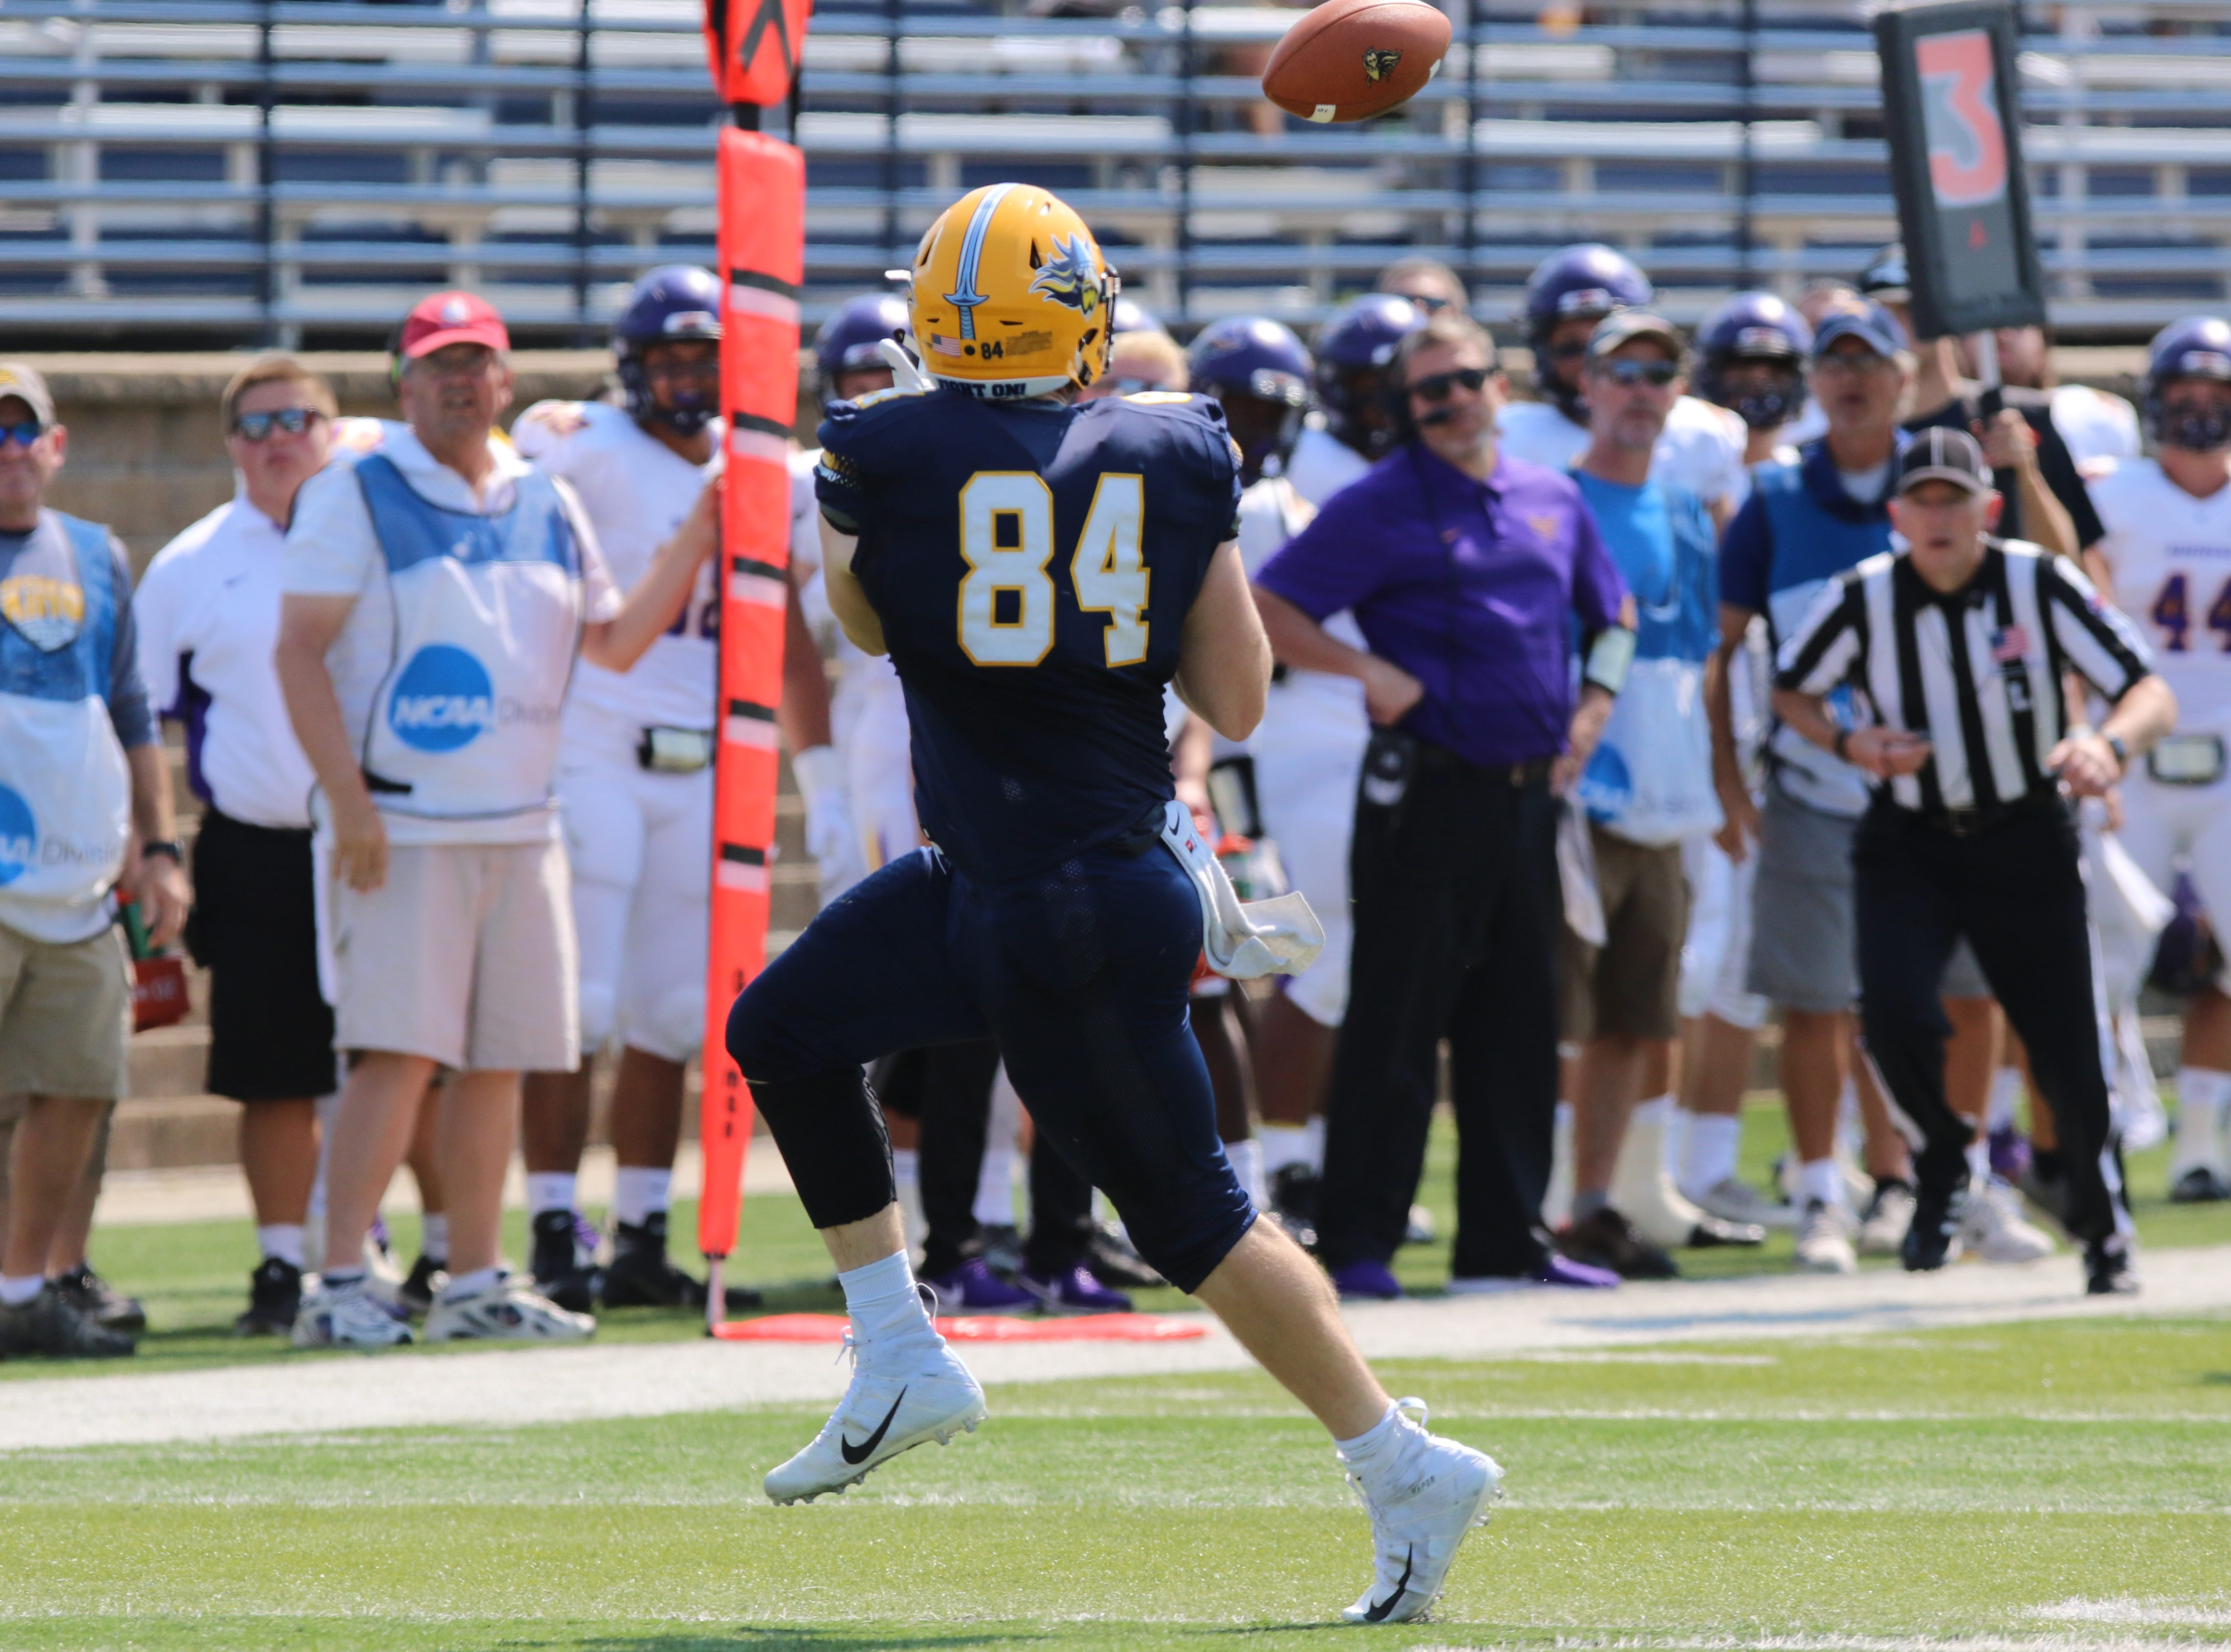 Augustana's Sr tight end #84 Chet Peerenboom catches a pass from quarterback Kyle Saddler during their game against Minnesota State-Mankato. Minnesota State won 38-36.